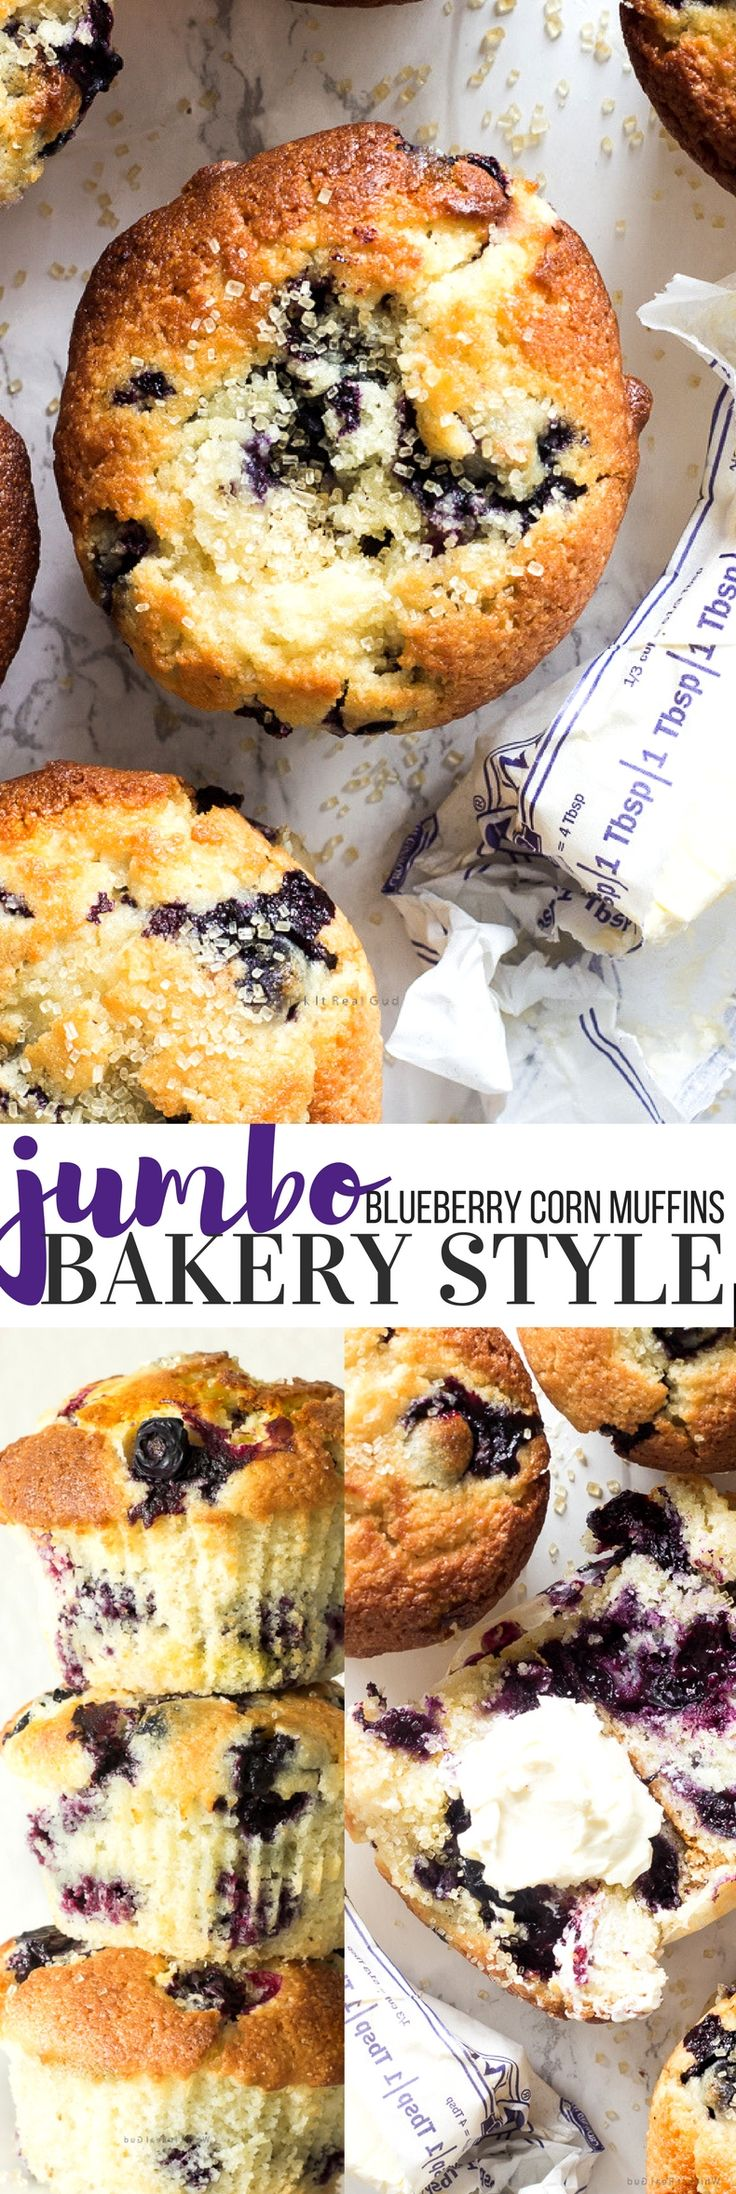 These jumbo blueberry bakery style muffins are quick to prepare and an easy treat that can be whipped up for a morning sweet or anytime of the day.